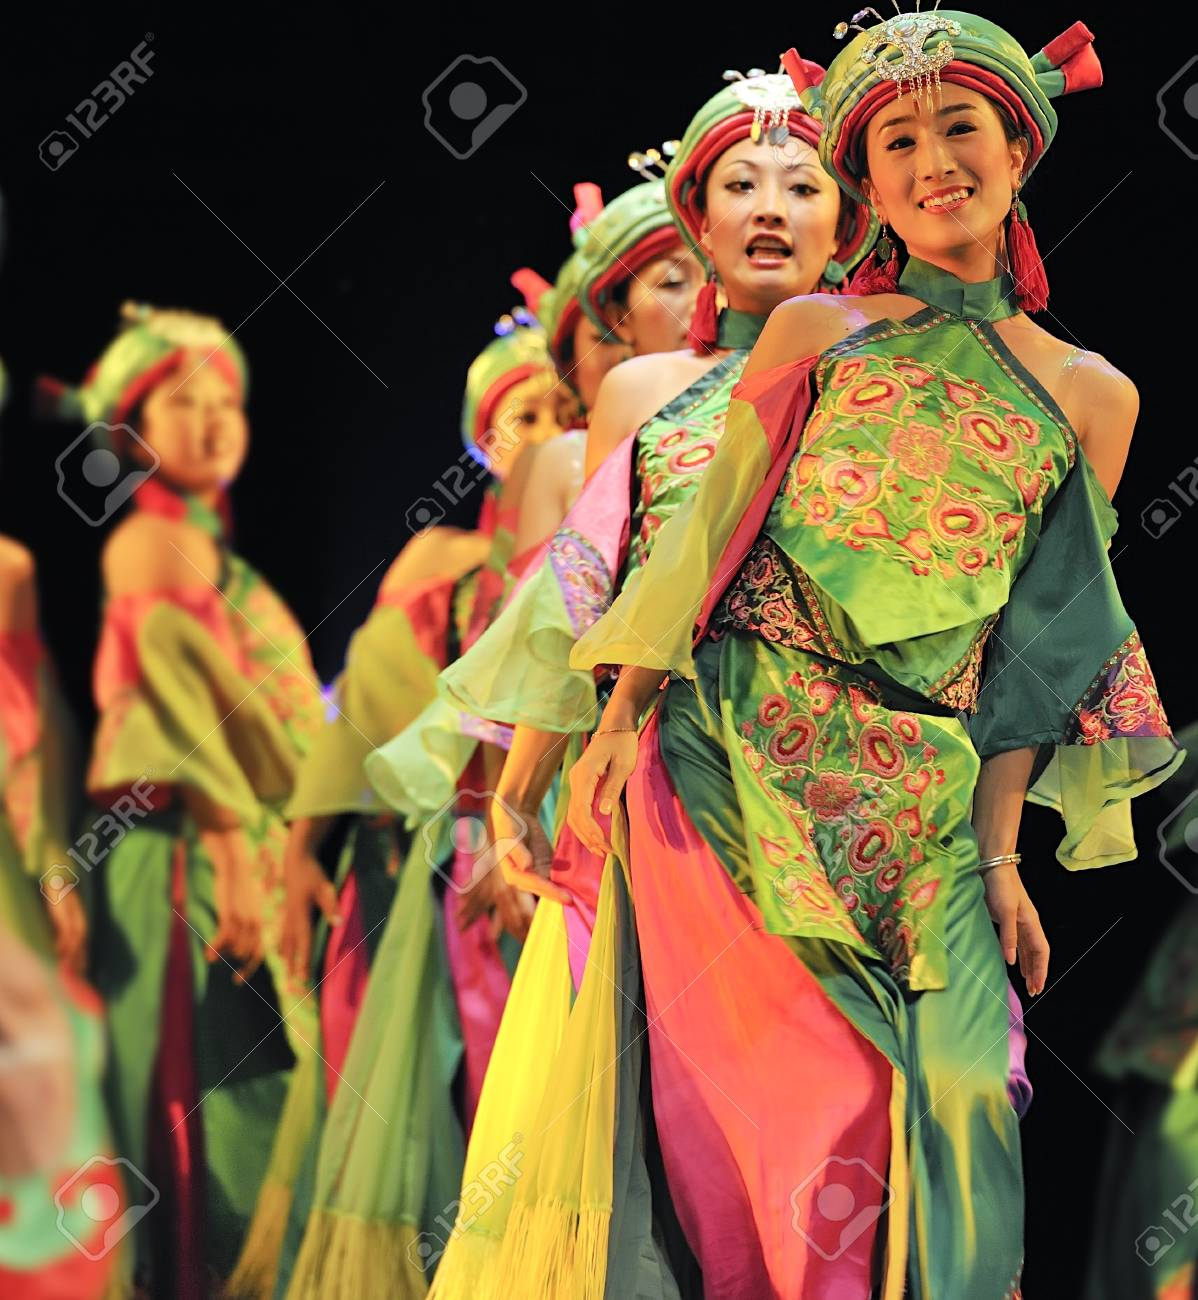 CHENGDU - SEP 28: chinese Qiang ethnic dancers perform on stage at Sichuan experimental theater.Sep 28,2010 in Chengdu, China. Stock Photo - 9397015